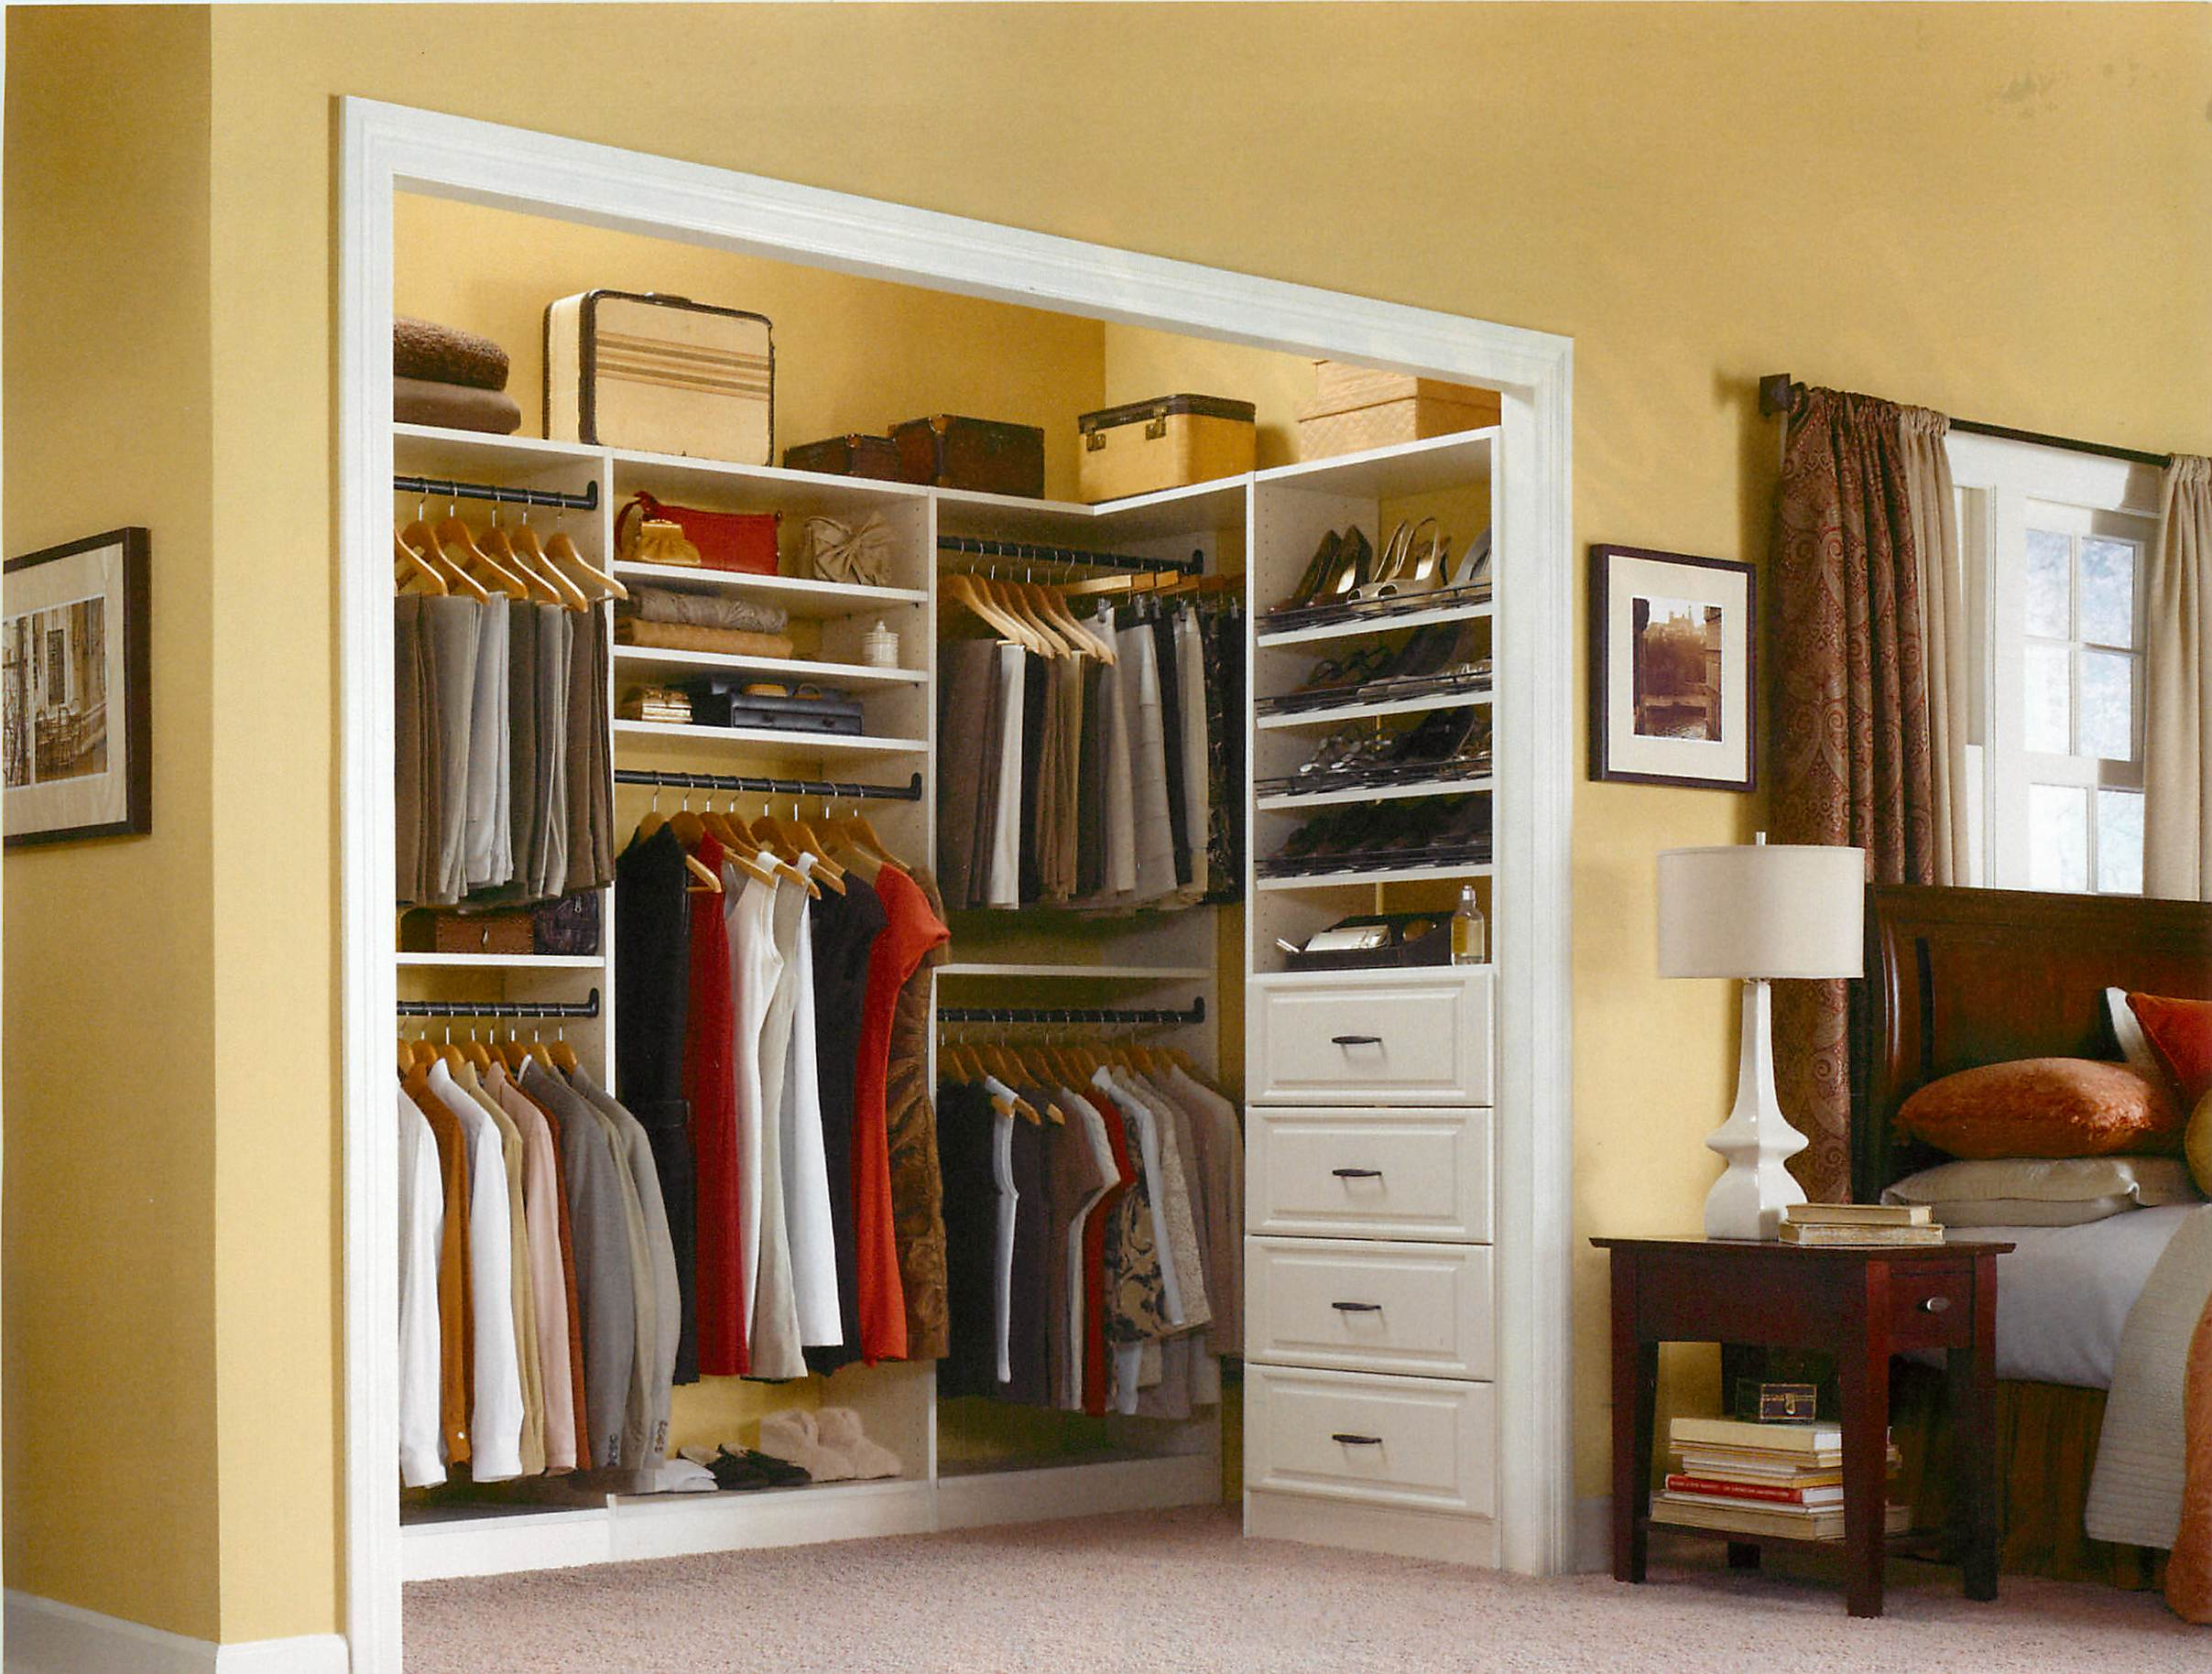 Rubbermaid Custom Closets & Rubbermaid Custom Closets are the answer to your organizing question ...